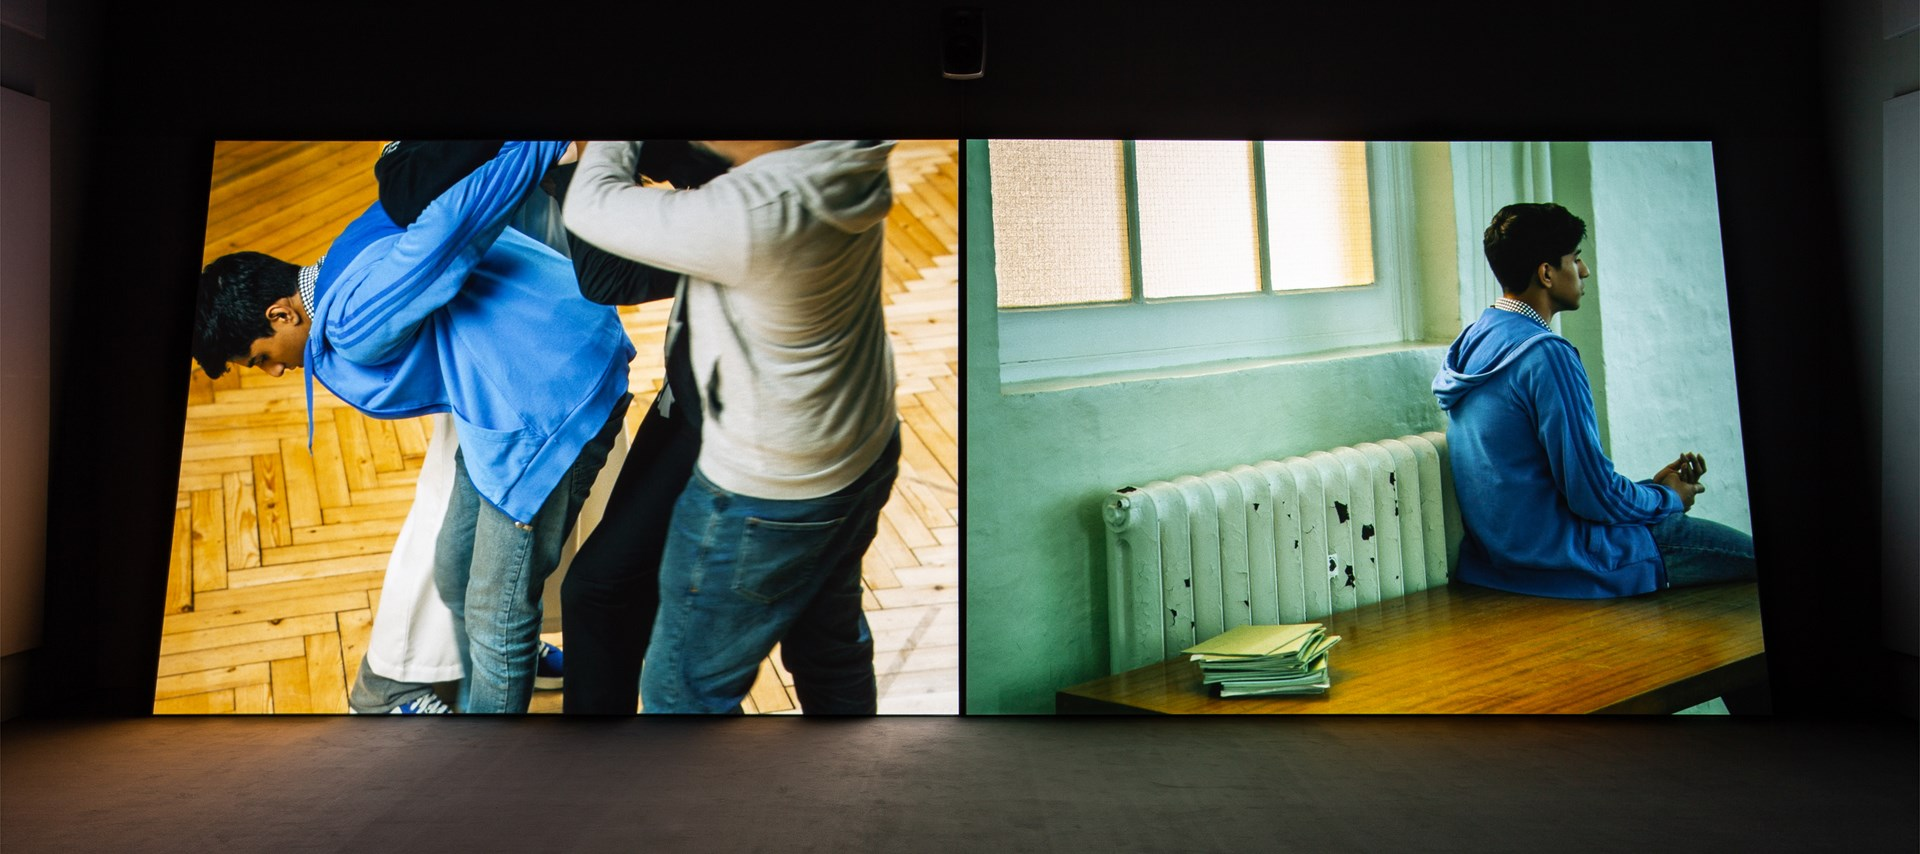 Imran Perretta: the desructors. Installation view by Rob Harris. © BALTIC 2020